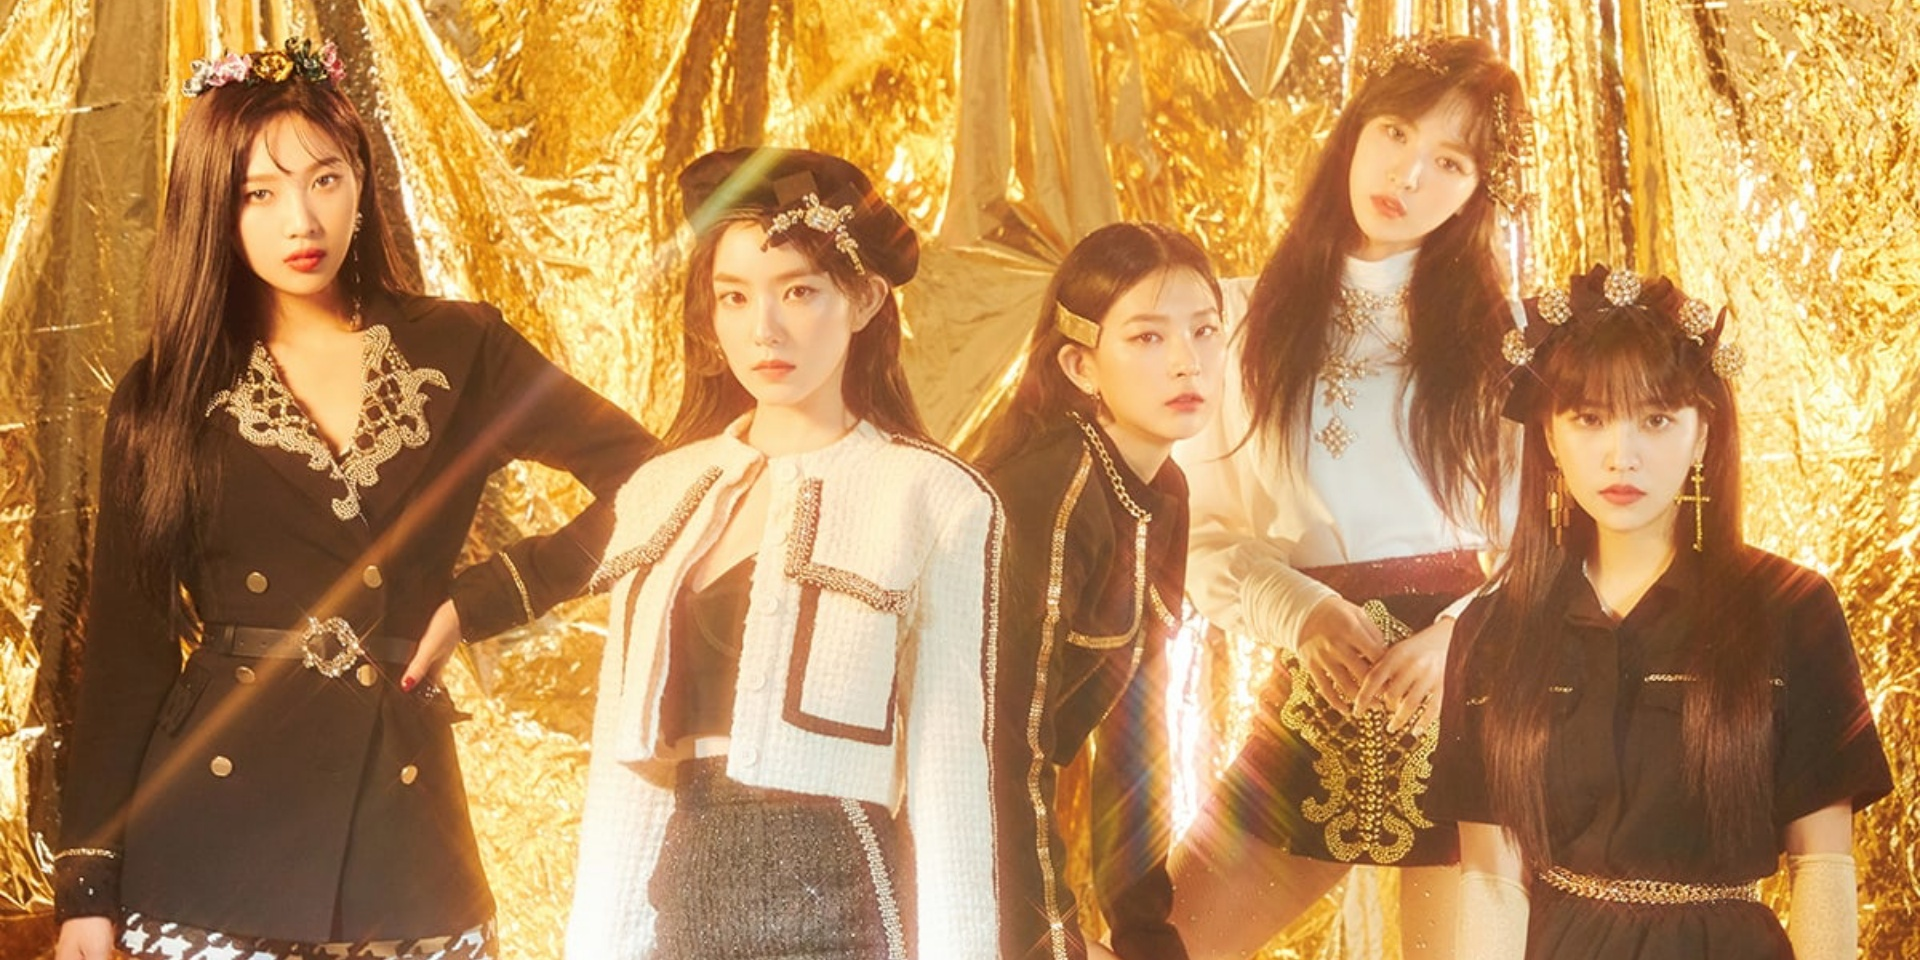 Red Velvet releases new EP along with music video for 'RBB (Really Bad Boy)' - listen